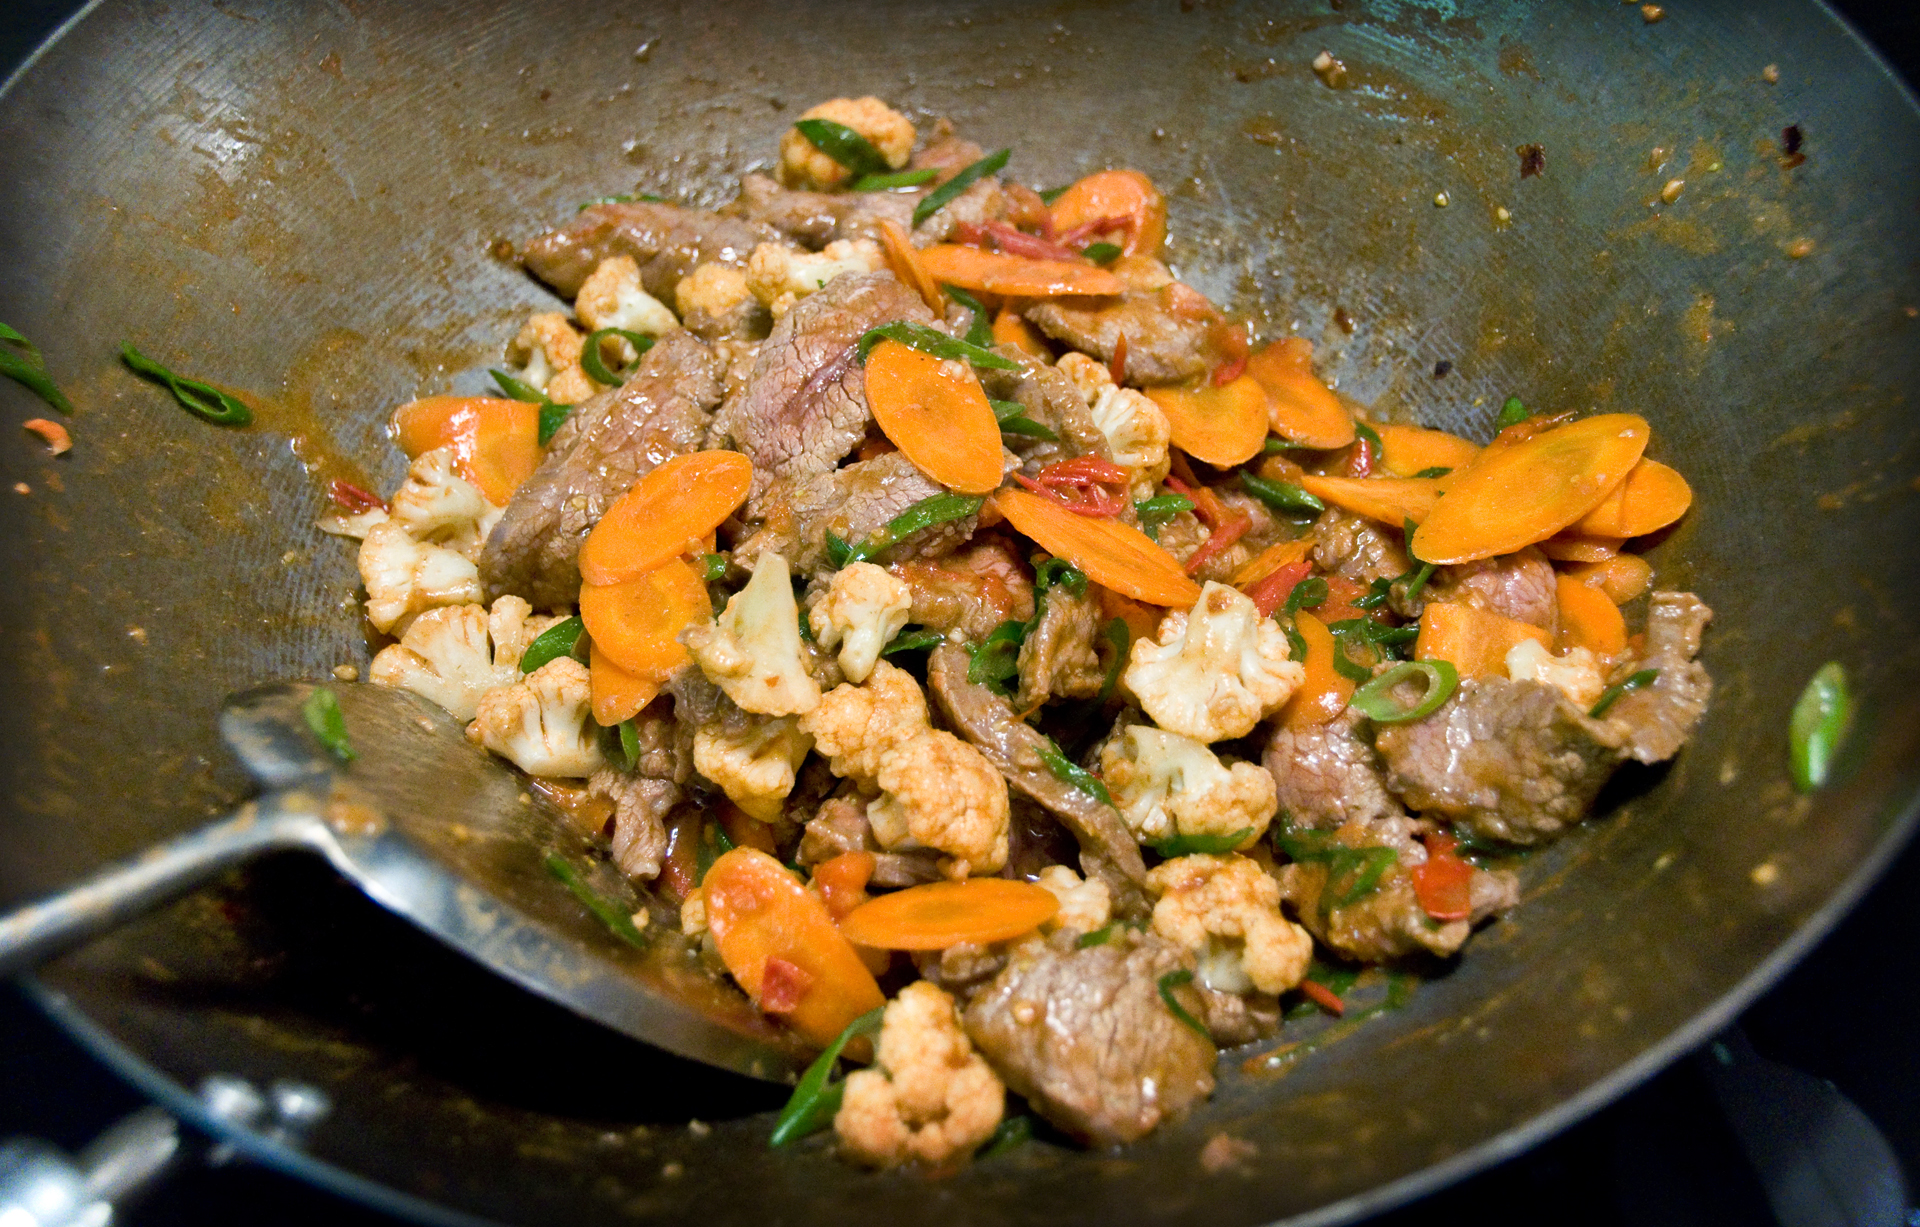 Cumin-Scented Beef Stir Fry with Vegetables   The Little GSP